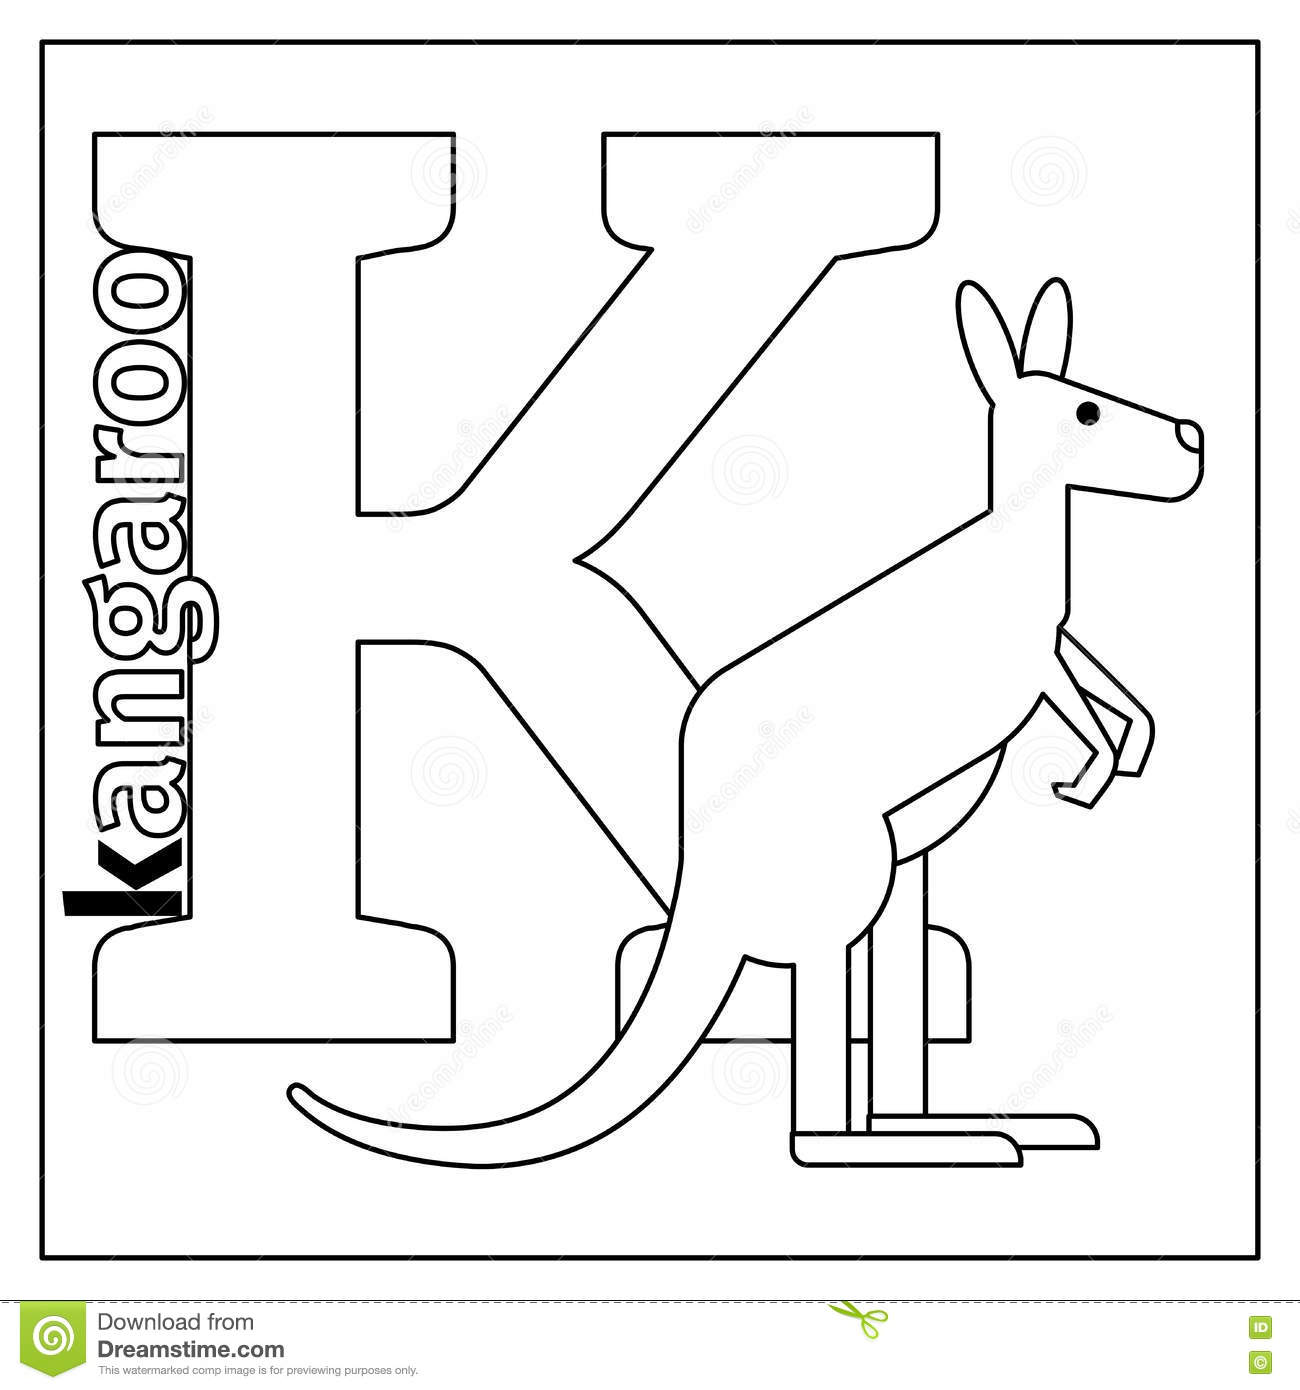 k for kangaroo coloring pages - photo #20